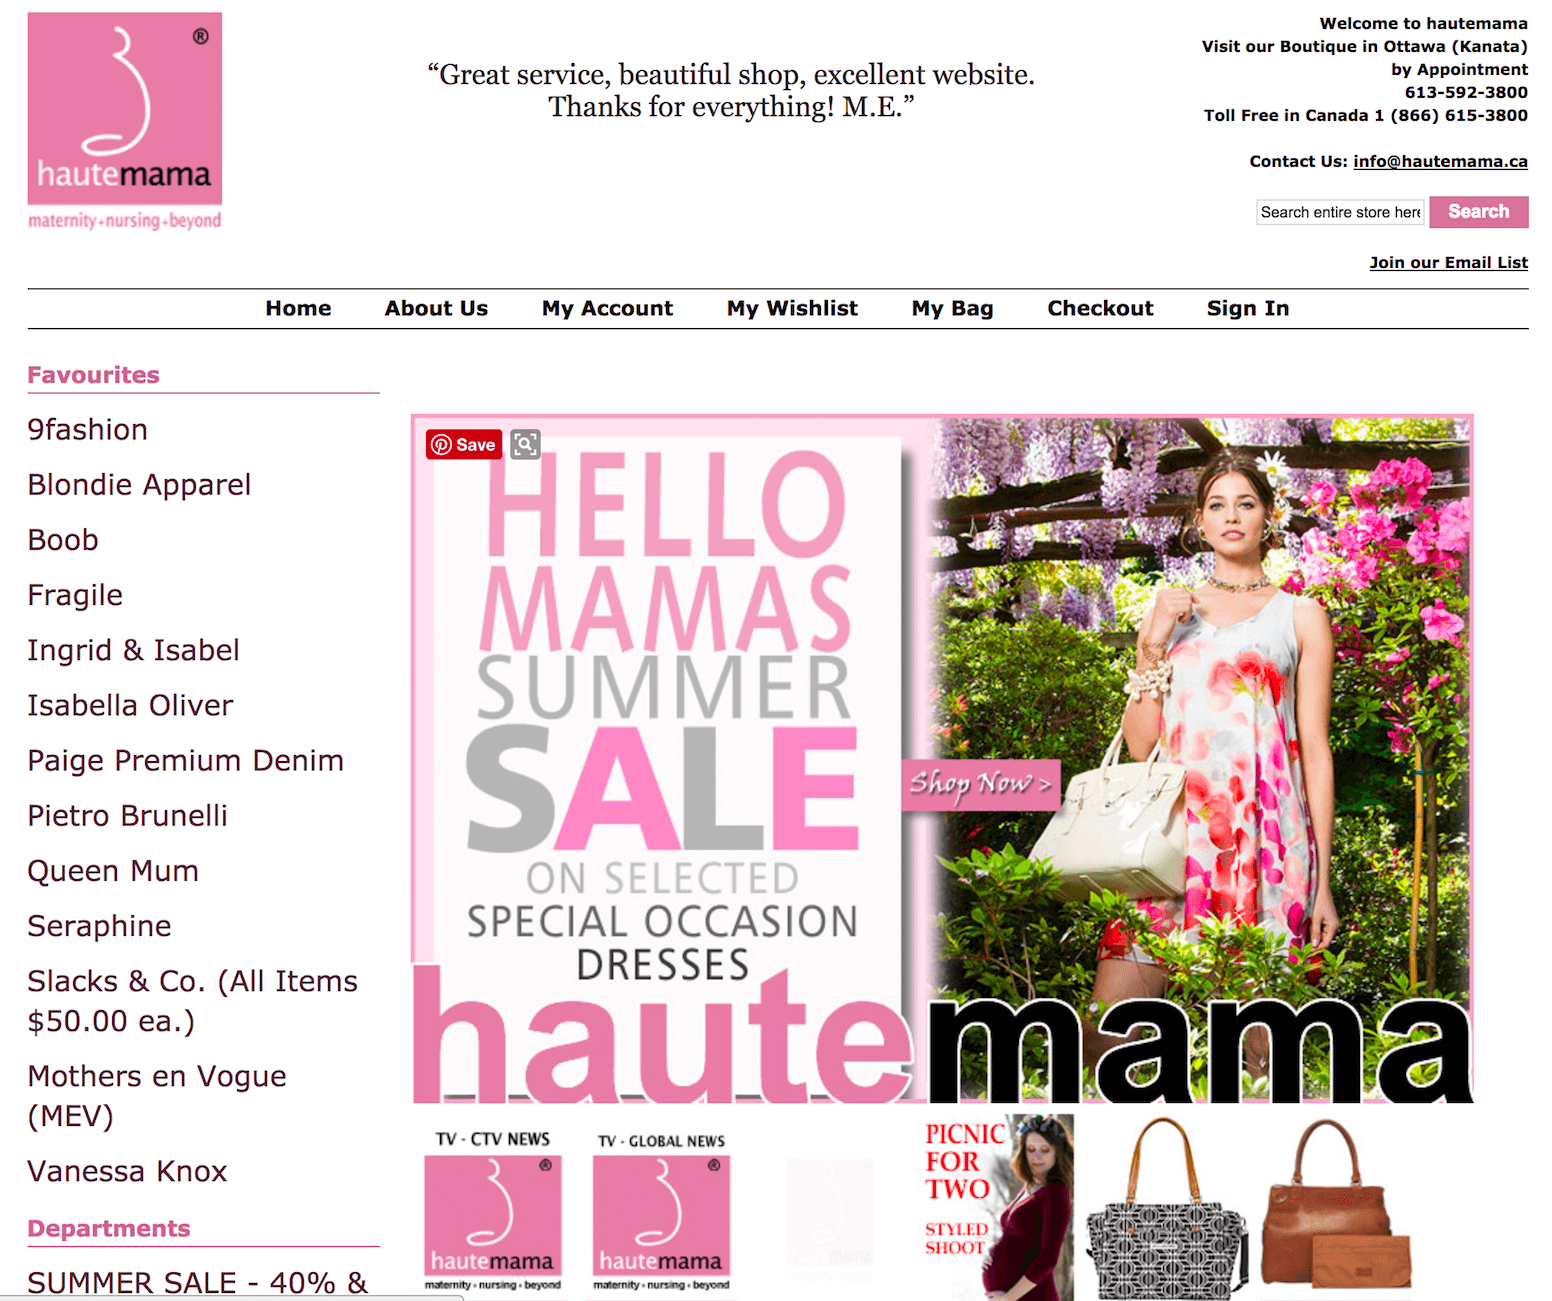 Haute Mama Boutique Maternity and Nursing Store